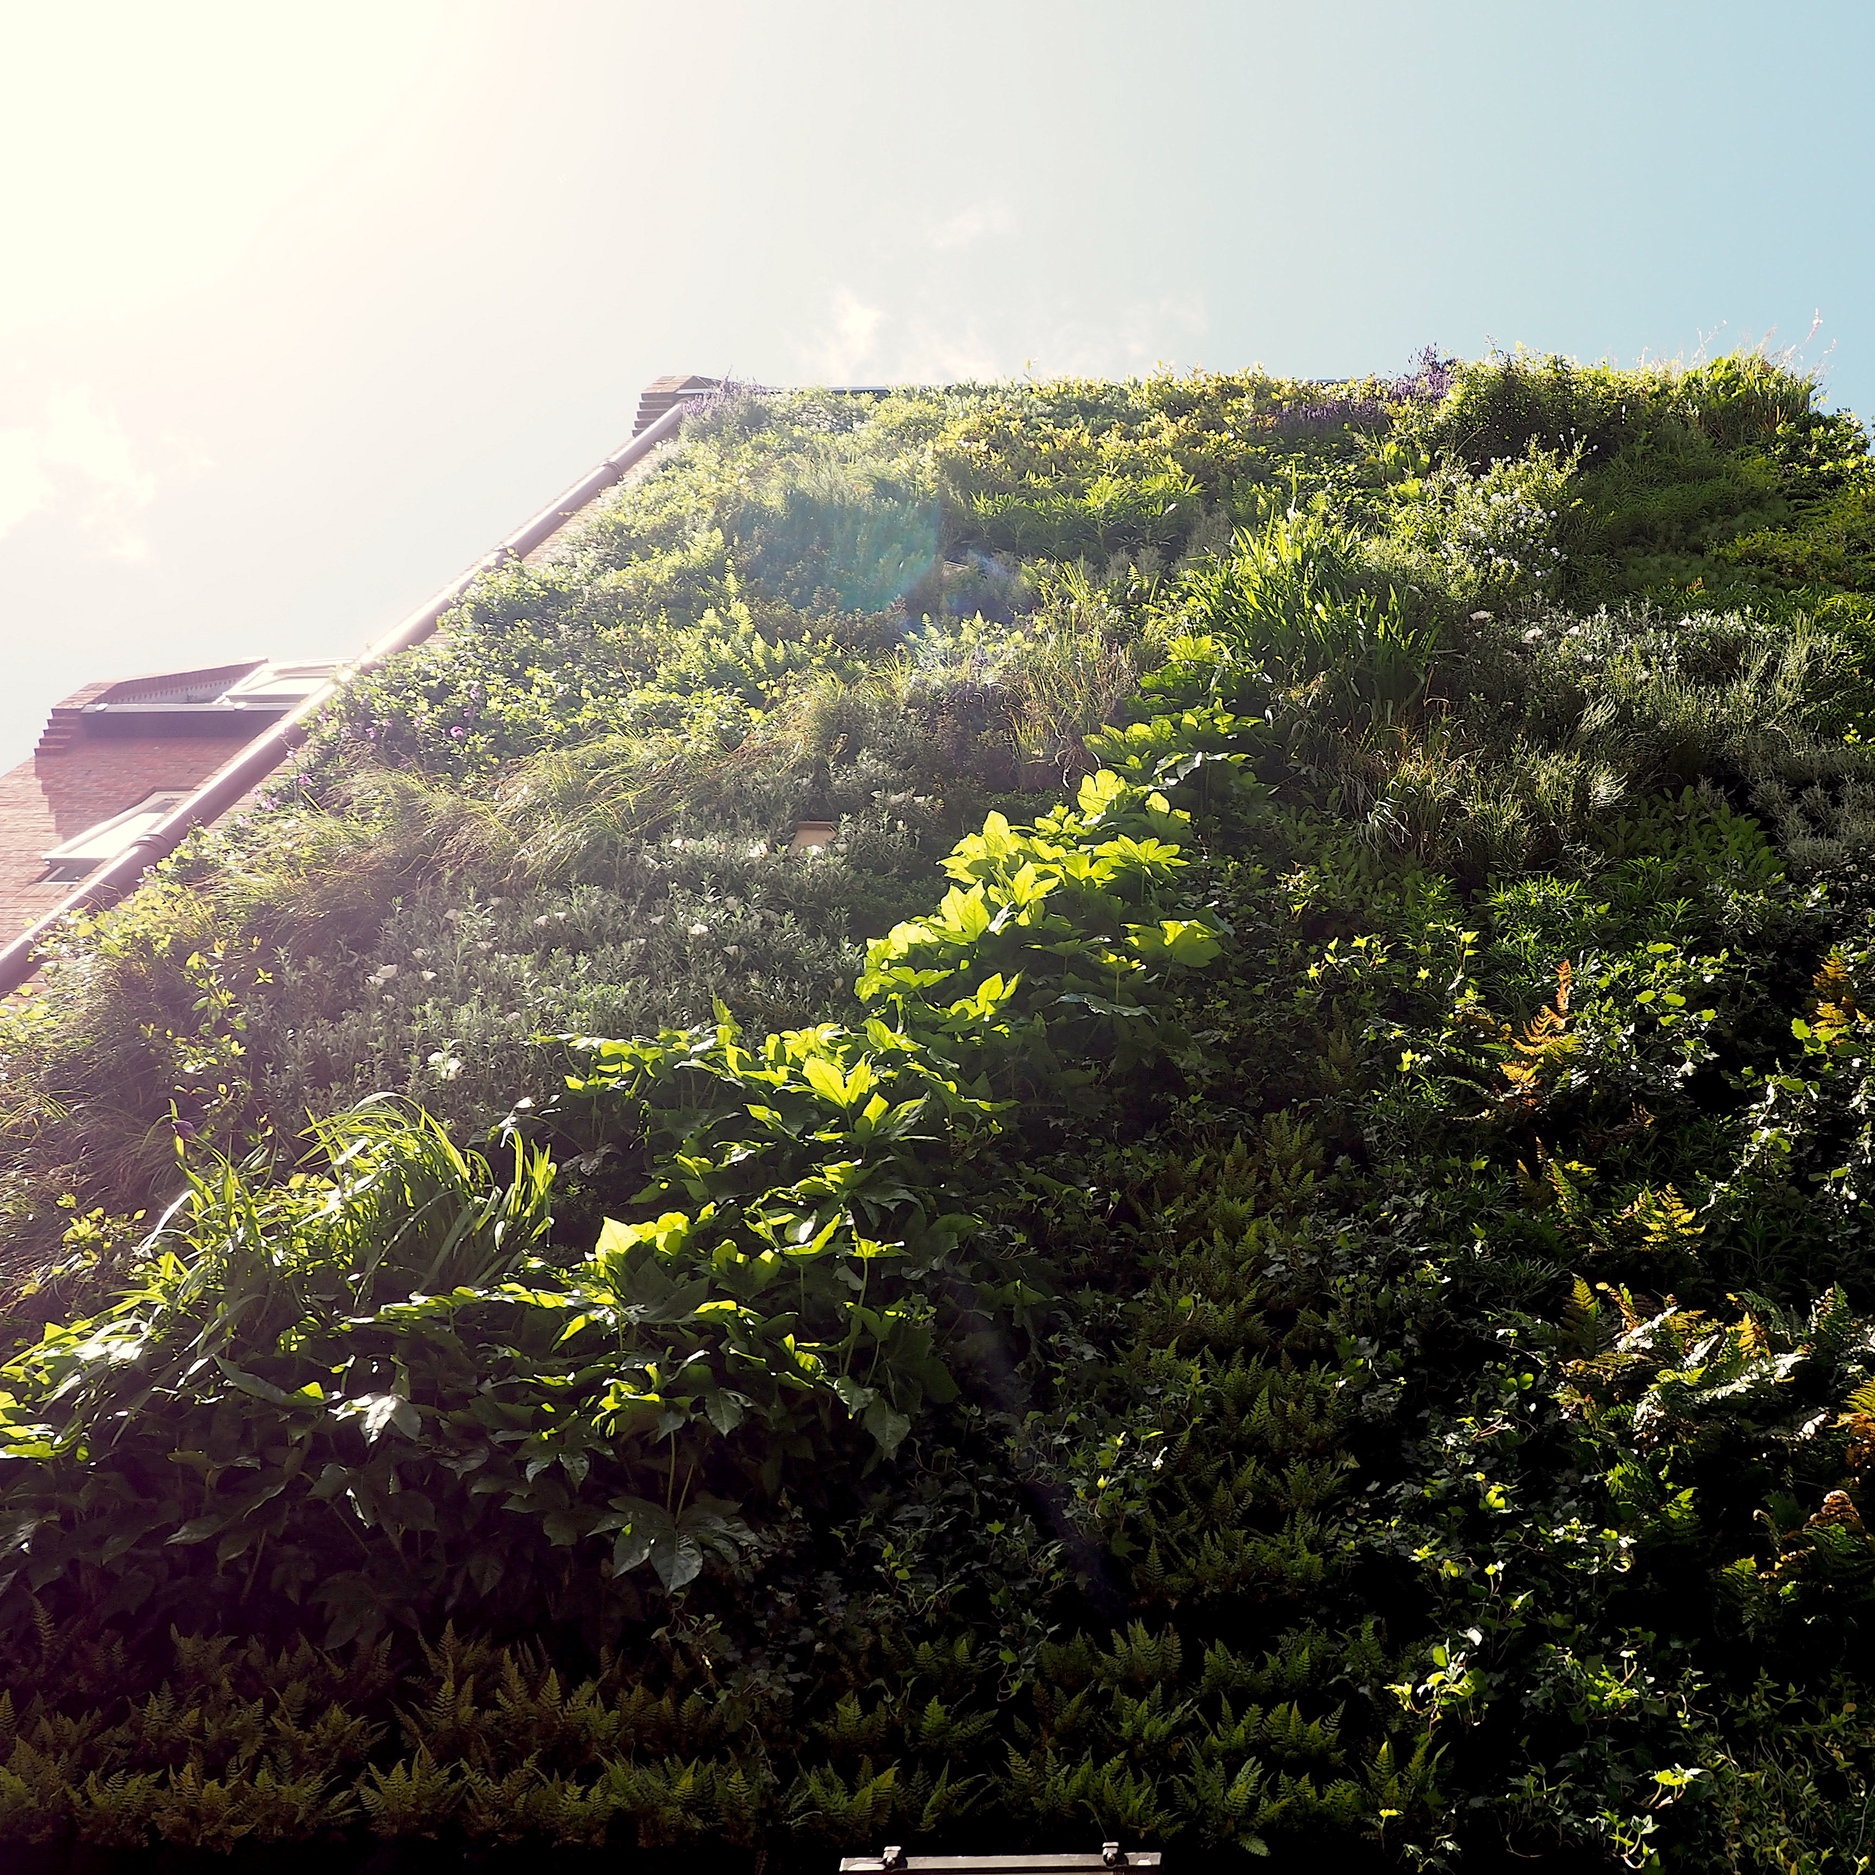 Orchard-Lisle Living Wall Reveal - June 2019